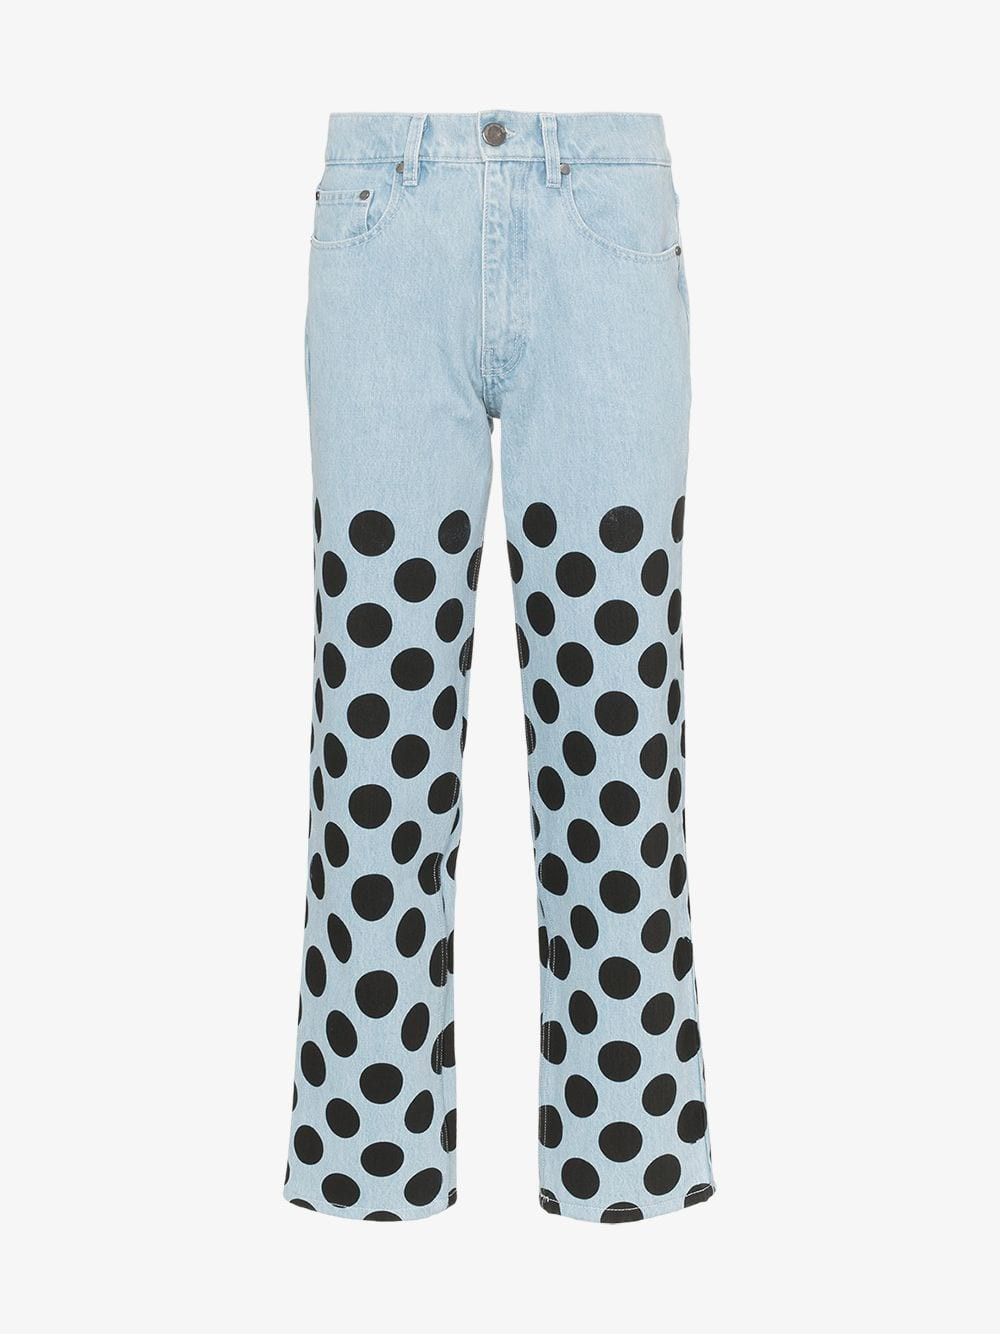 HOUSE OF HOLLAND Polka Dot Printed Straight Leg Jeans in blue